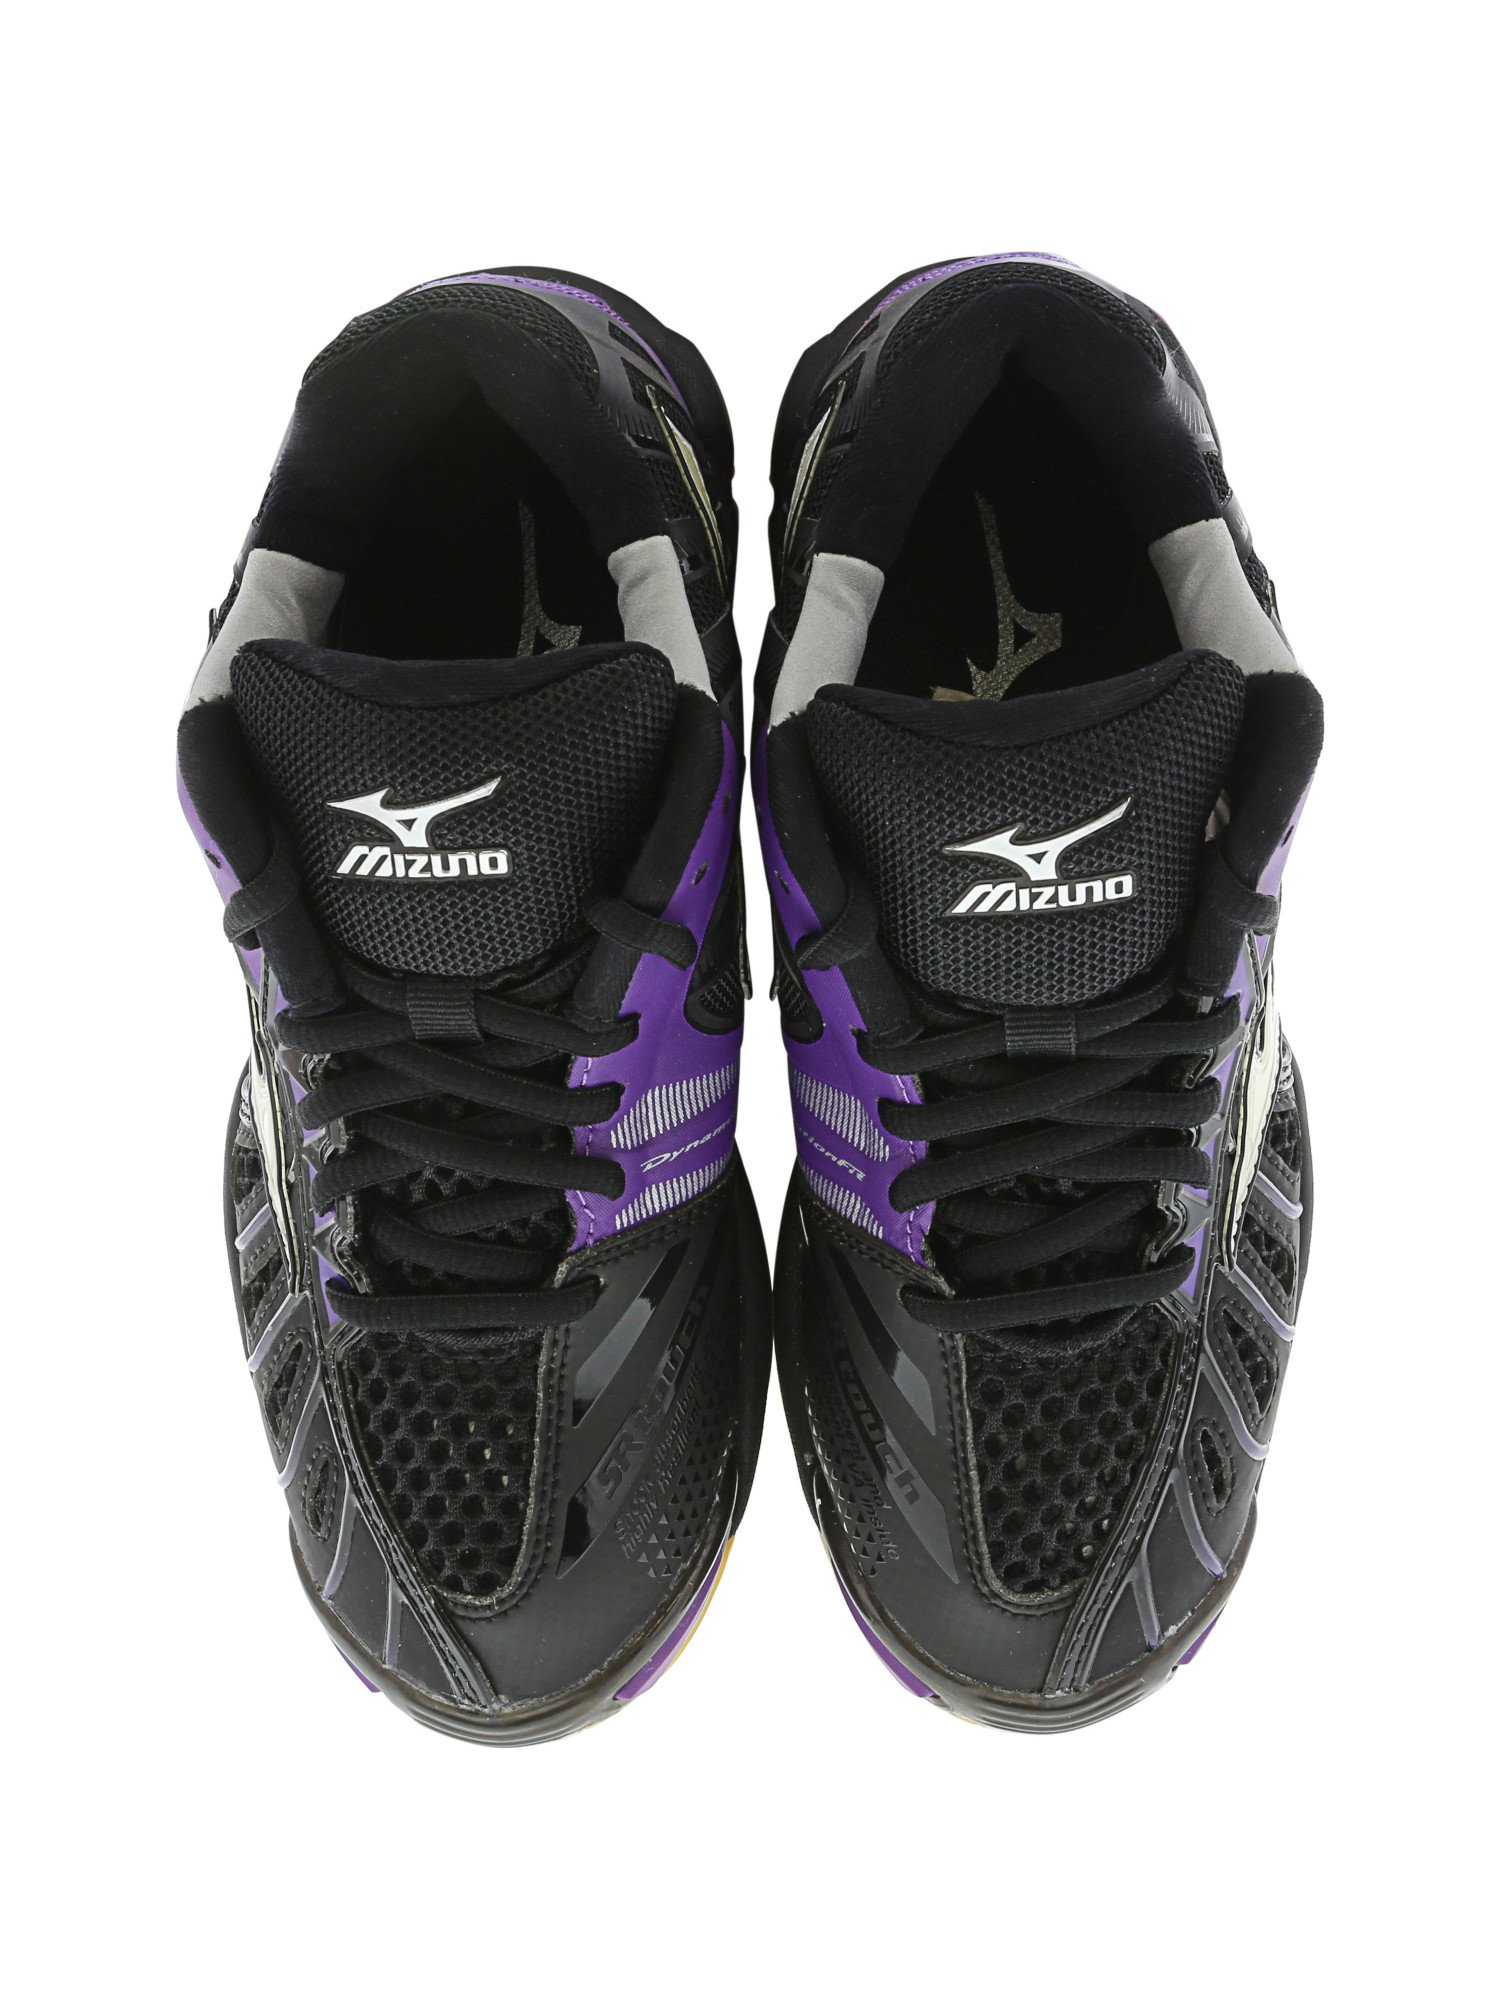 mizuno womens volleyball shoes size 8 x 4 hs measure girl